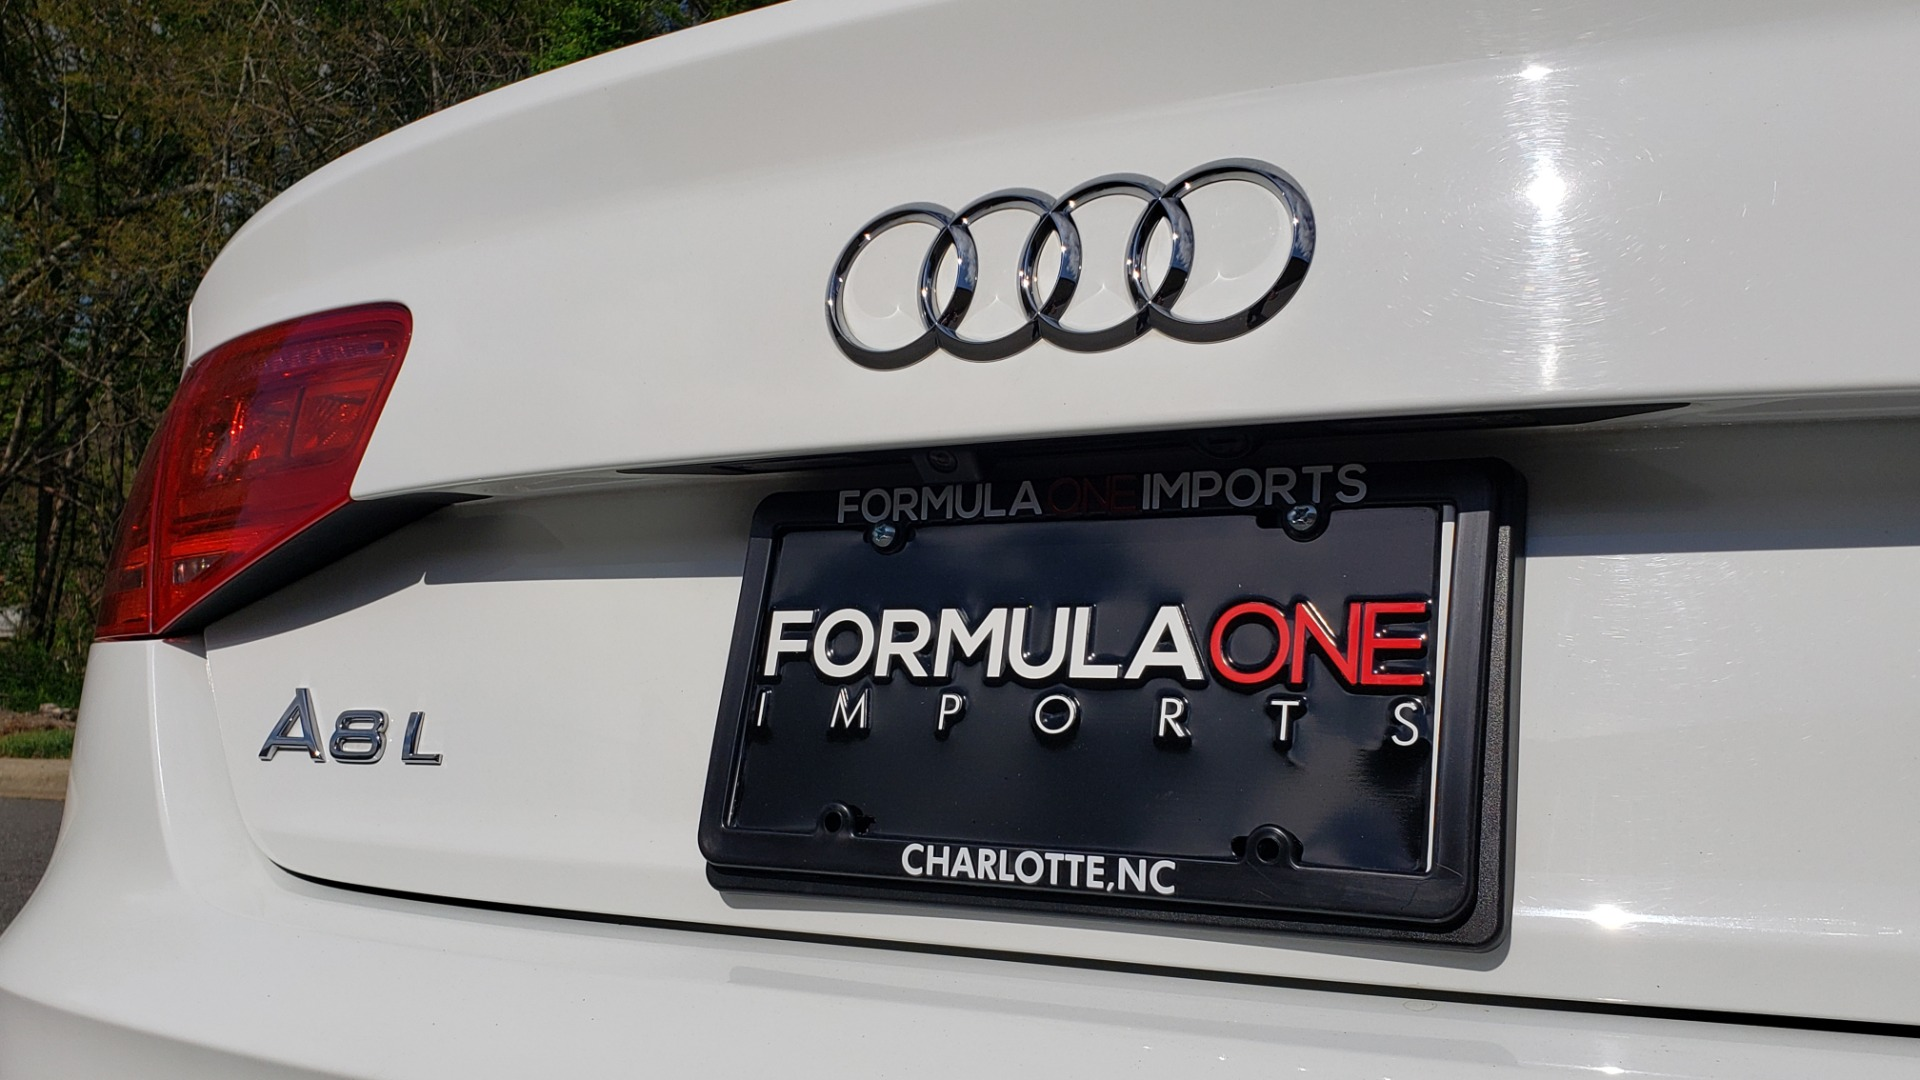 Used 2011 Audi A8 L QUATTRO / NAV / PANO-ROOF / REARVIEW / BSM / B&O SND for sale Sold at Formula Imports in Charlotte NC 28227 31